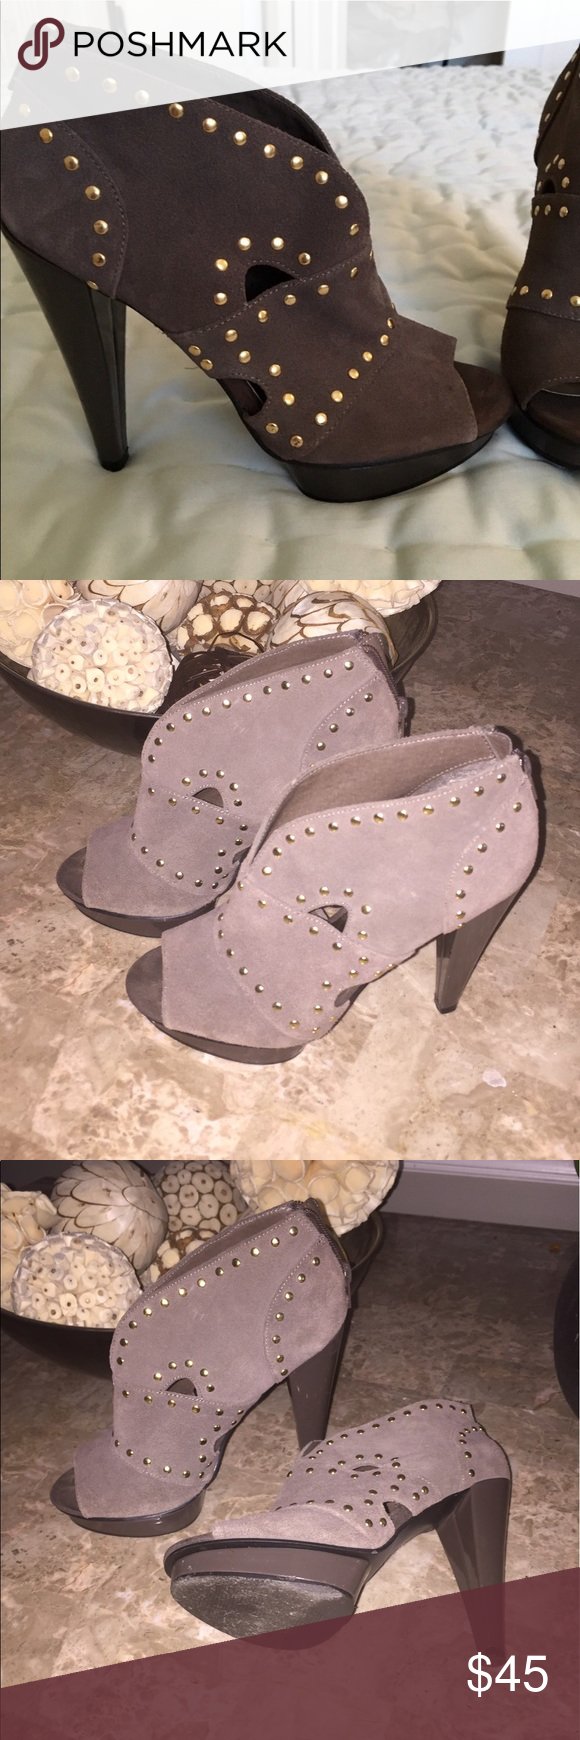 Steve Madden bootie Worm once indoors.  Open toe suede platform bootie.  So cute and comfy.  Gold detail. Steve Madden Shoes Ankle Boots & Booties